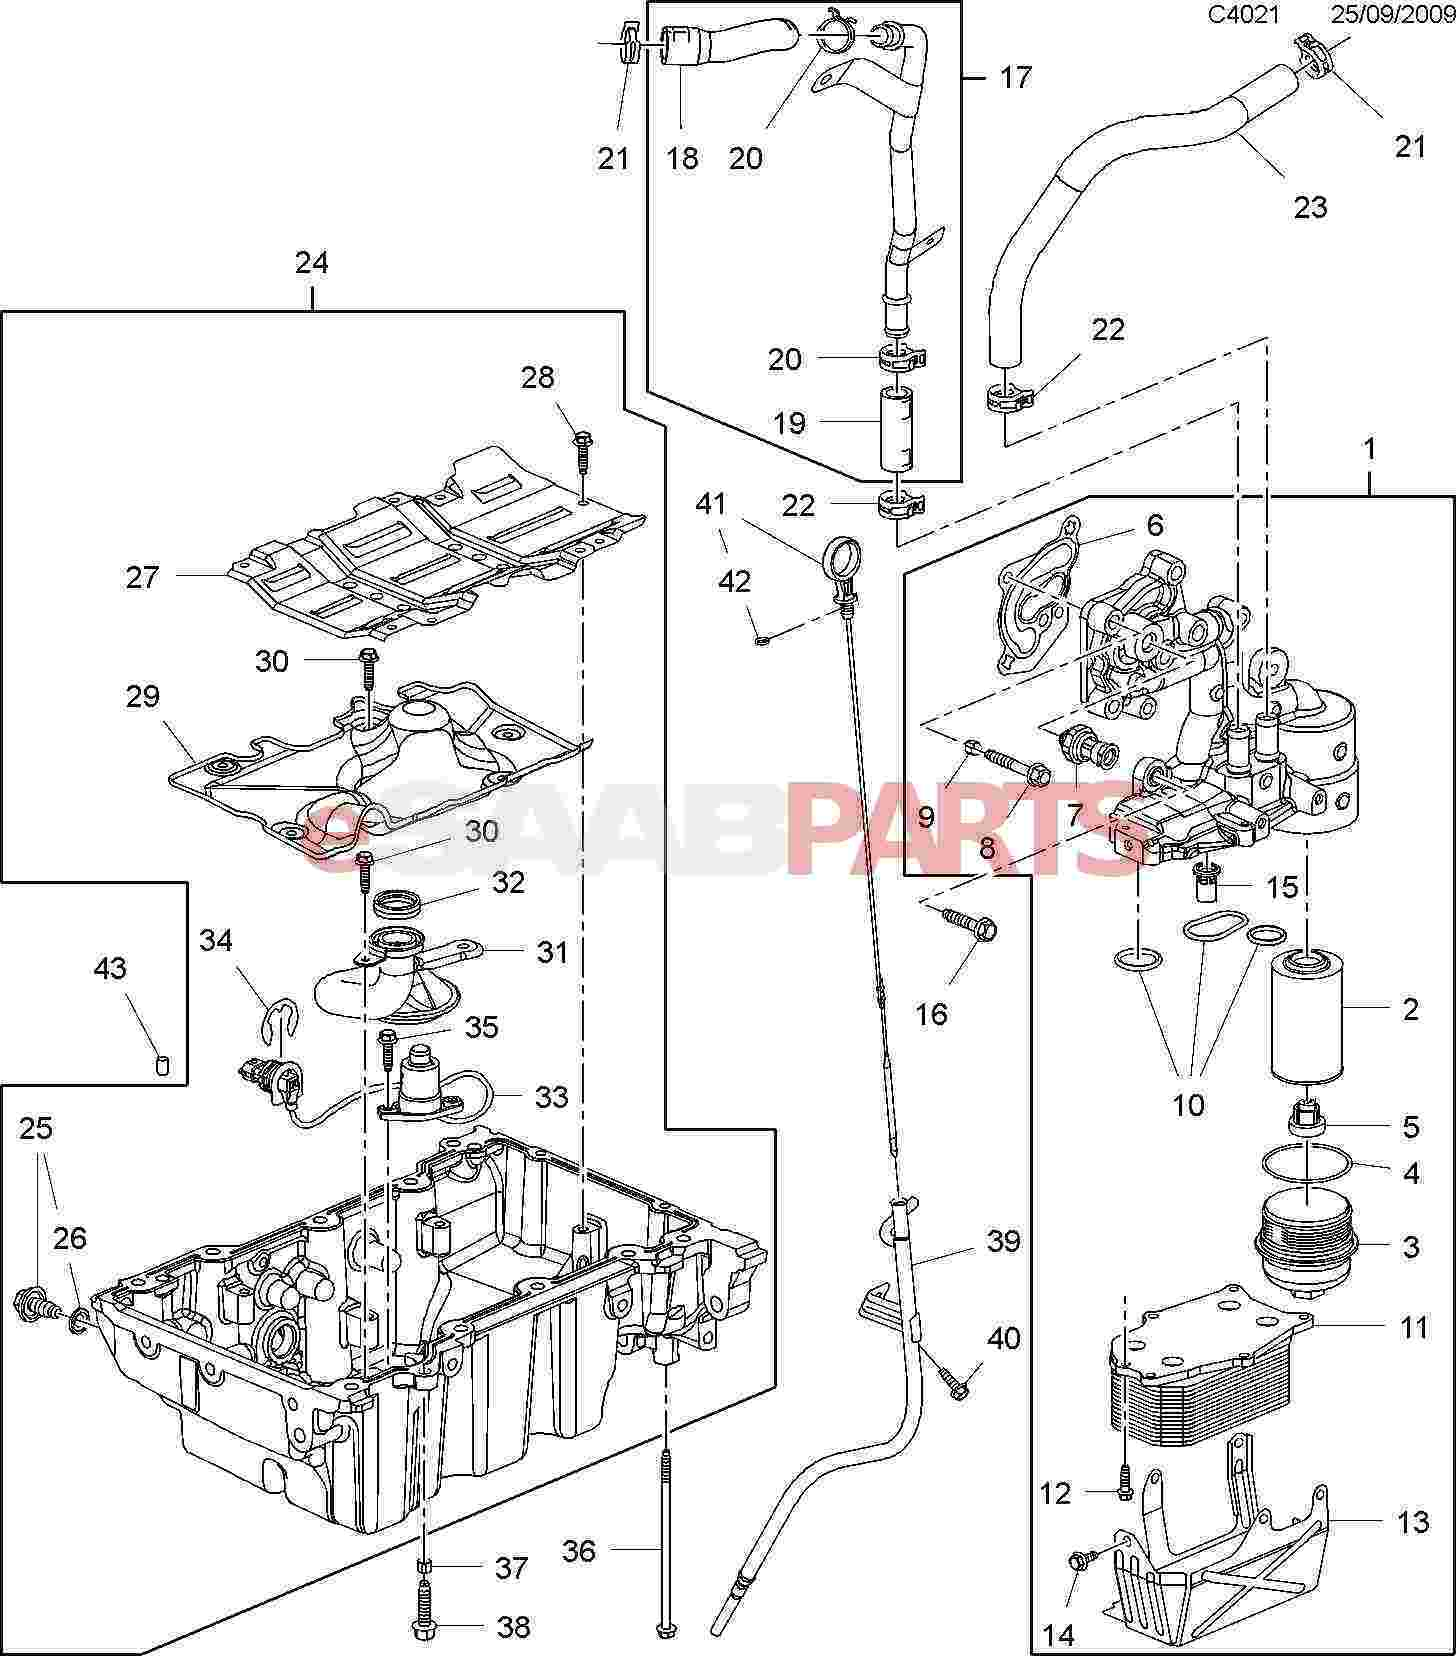 saab 9 5 3 0 engine diagram